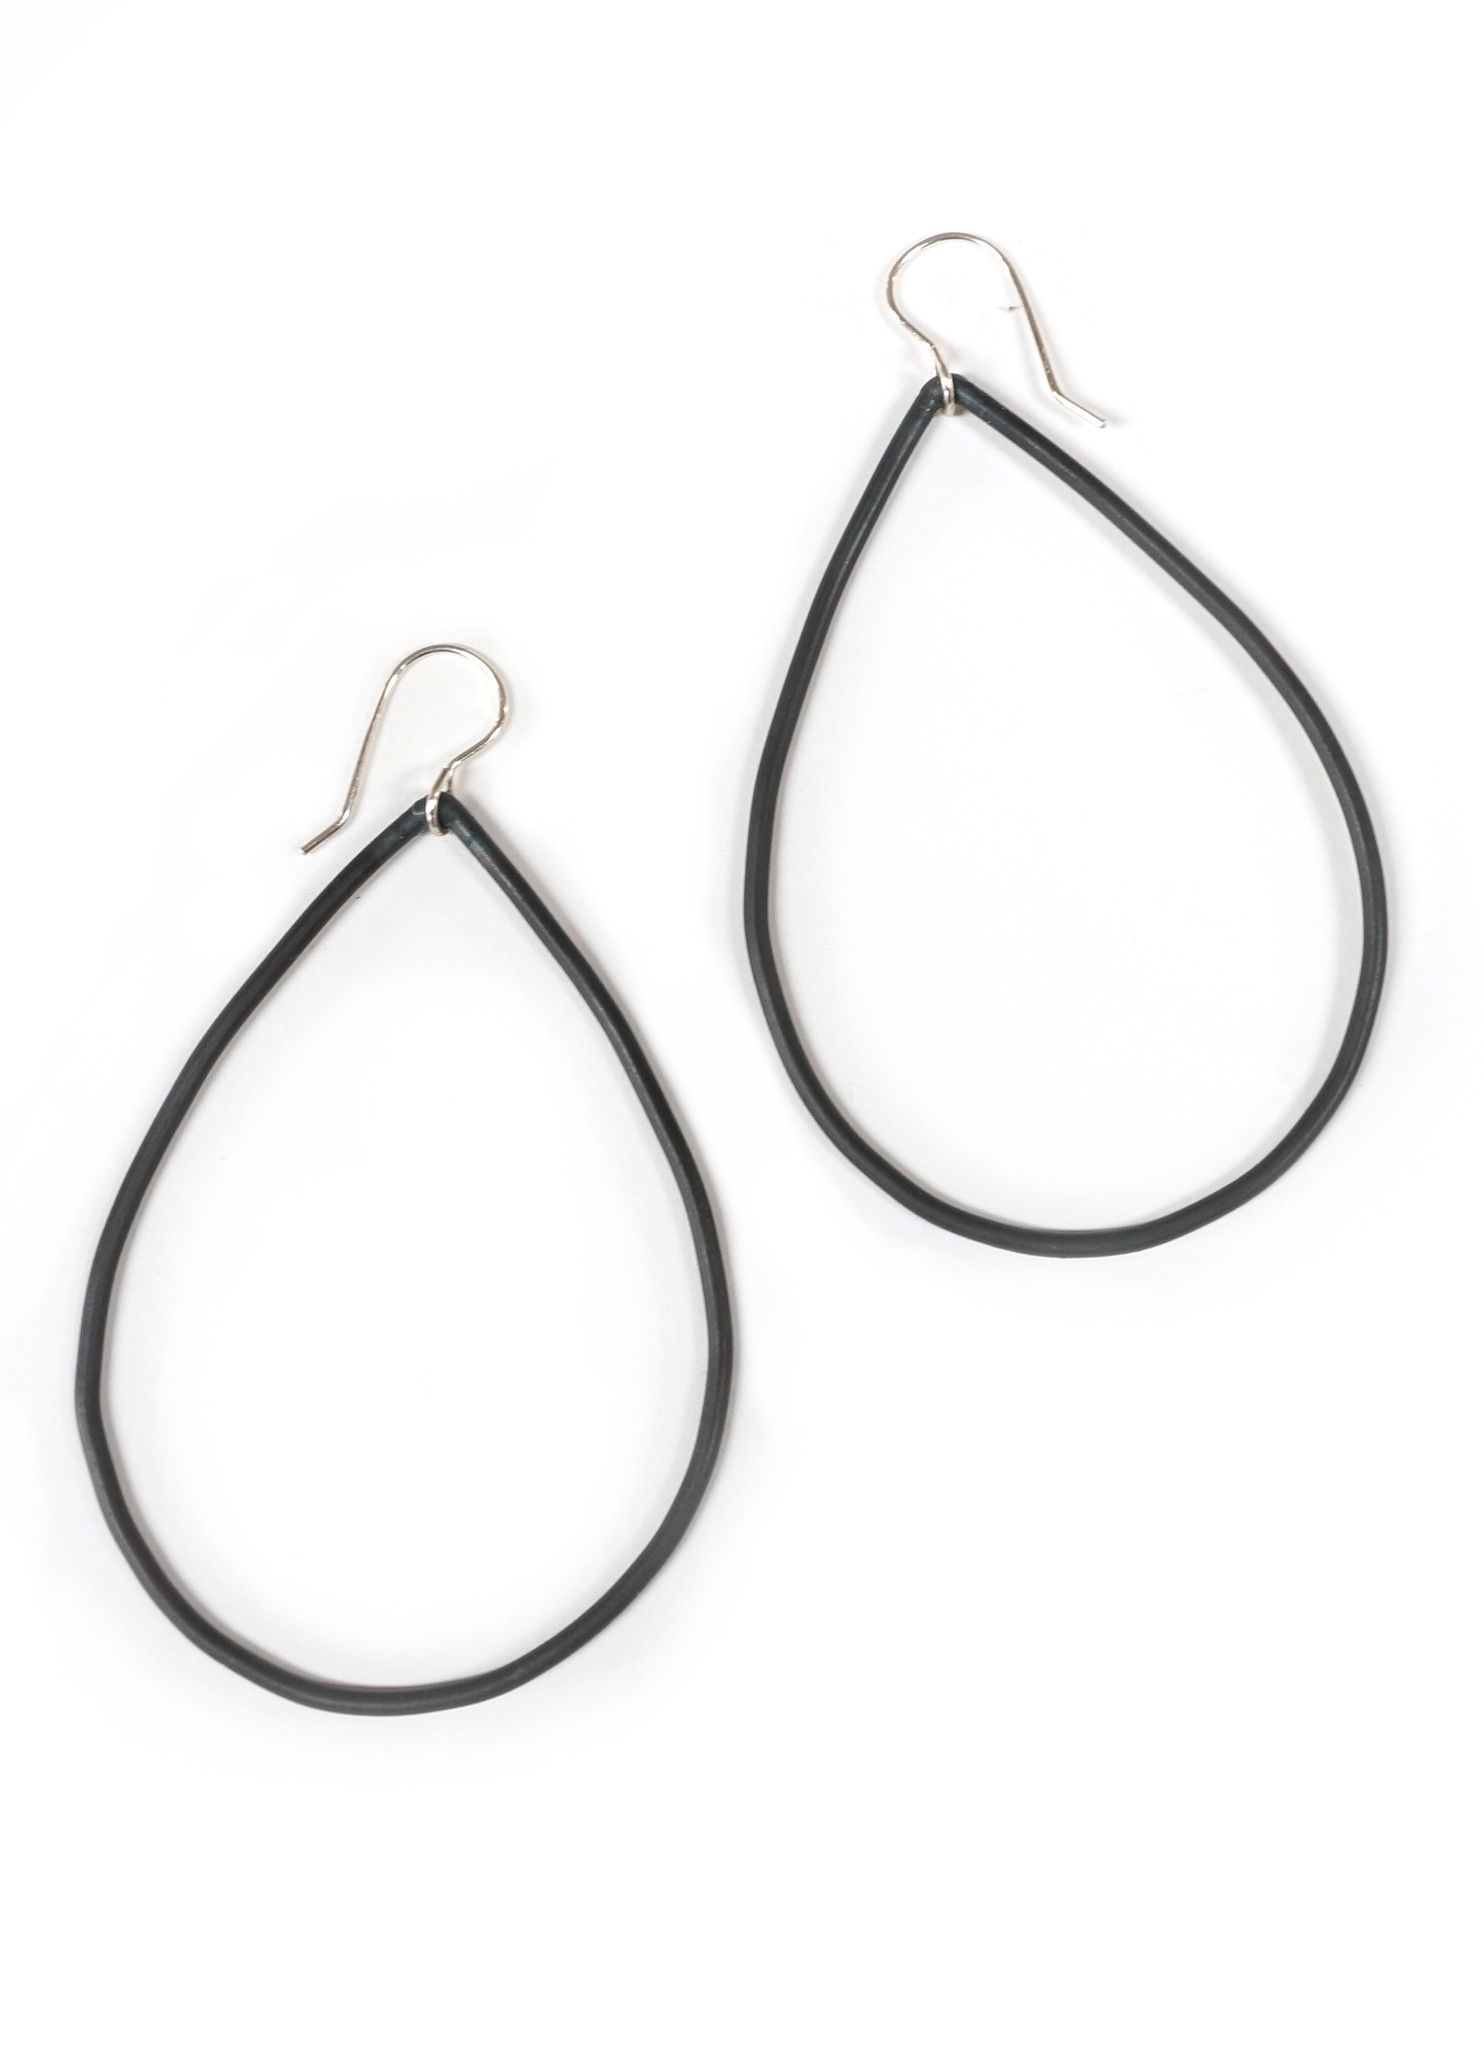 A bold take on our classic extra large Gabrielle earrings, this new version has been updated in a thicker design that's still supremely wearable. Available in four options - steel with sterling ear wi